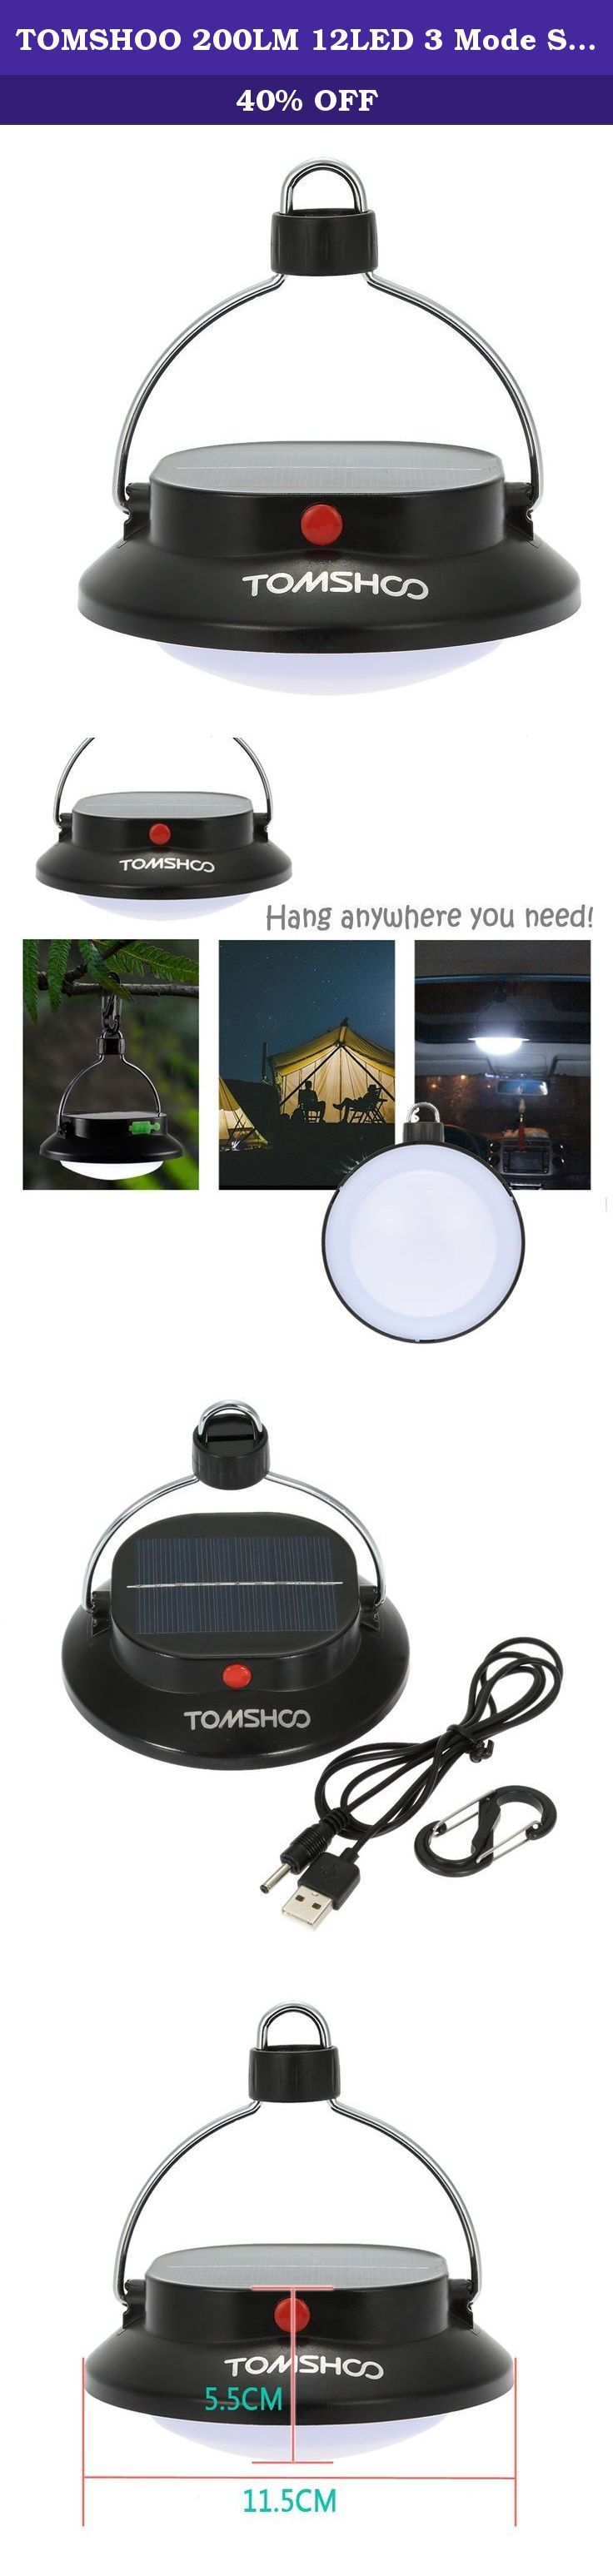 TOMSHOO 200LM 12LED 3 Mode Solar Power USB Charging Hiking Camping Lamp Tent Campsite Hanging Lamp Phone Charger with Rechargeable Battery Outdoor Indoor. This Camping Lamp is equipped with 12 ultra bright white LEDs and 3 lighting modes. It has rechargeable battery which can be powered by solar panel and USB charging. What's more, it can be also used as an emergency charger for your phone. Lightweight, compact and durable, it is a must have for night fishing, camping, hiking, and other...